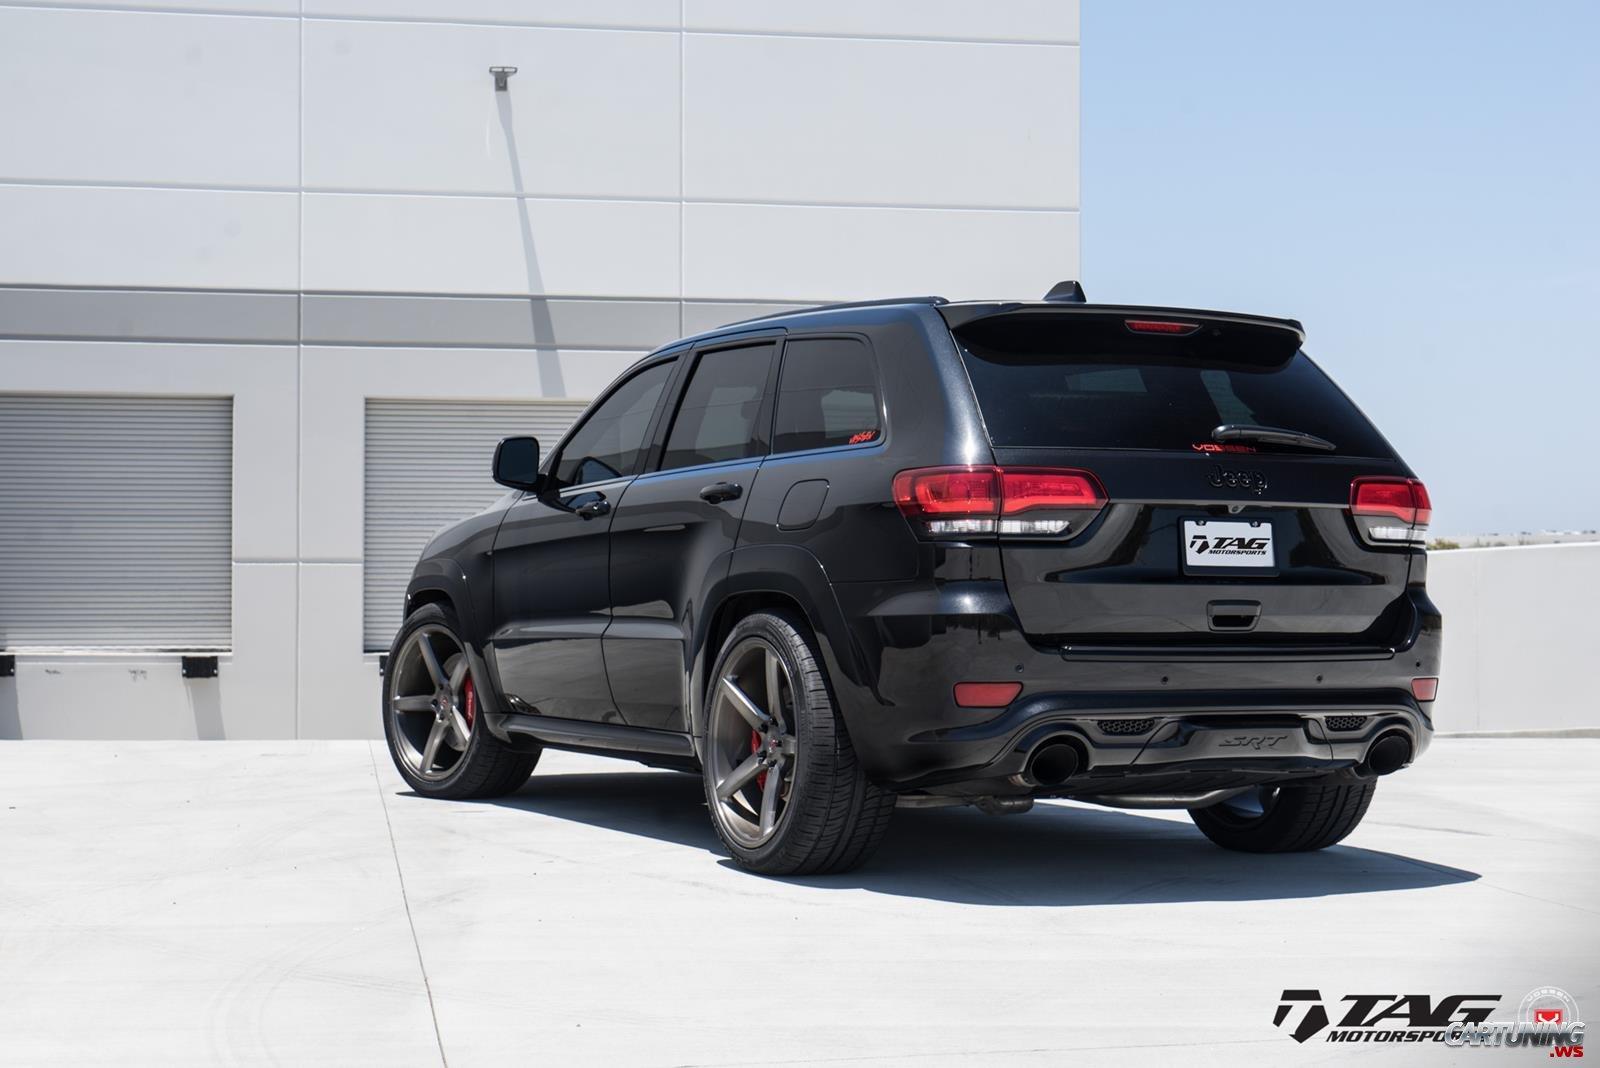 tuning jeep grand cherokee srt8 rear